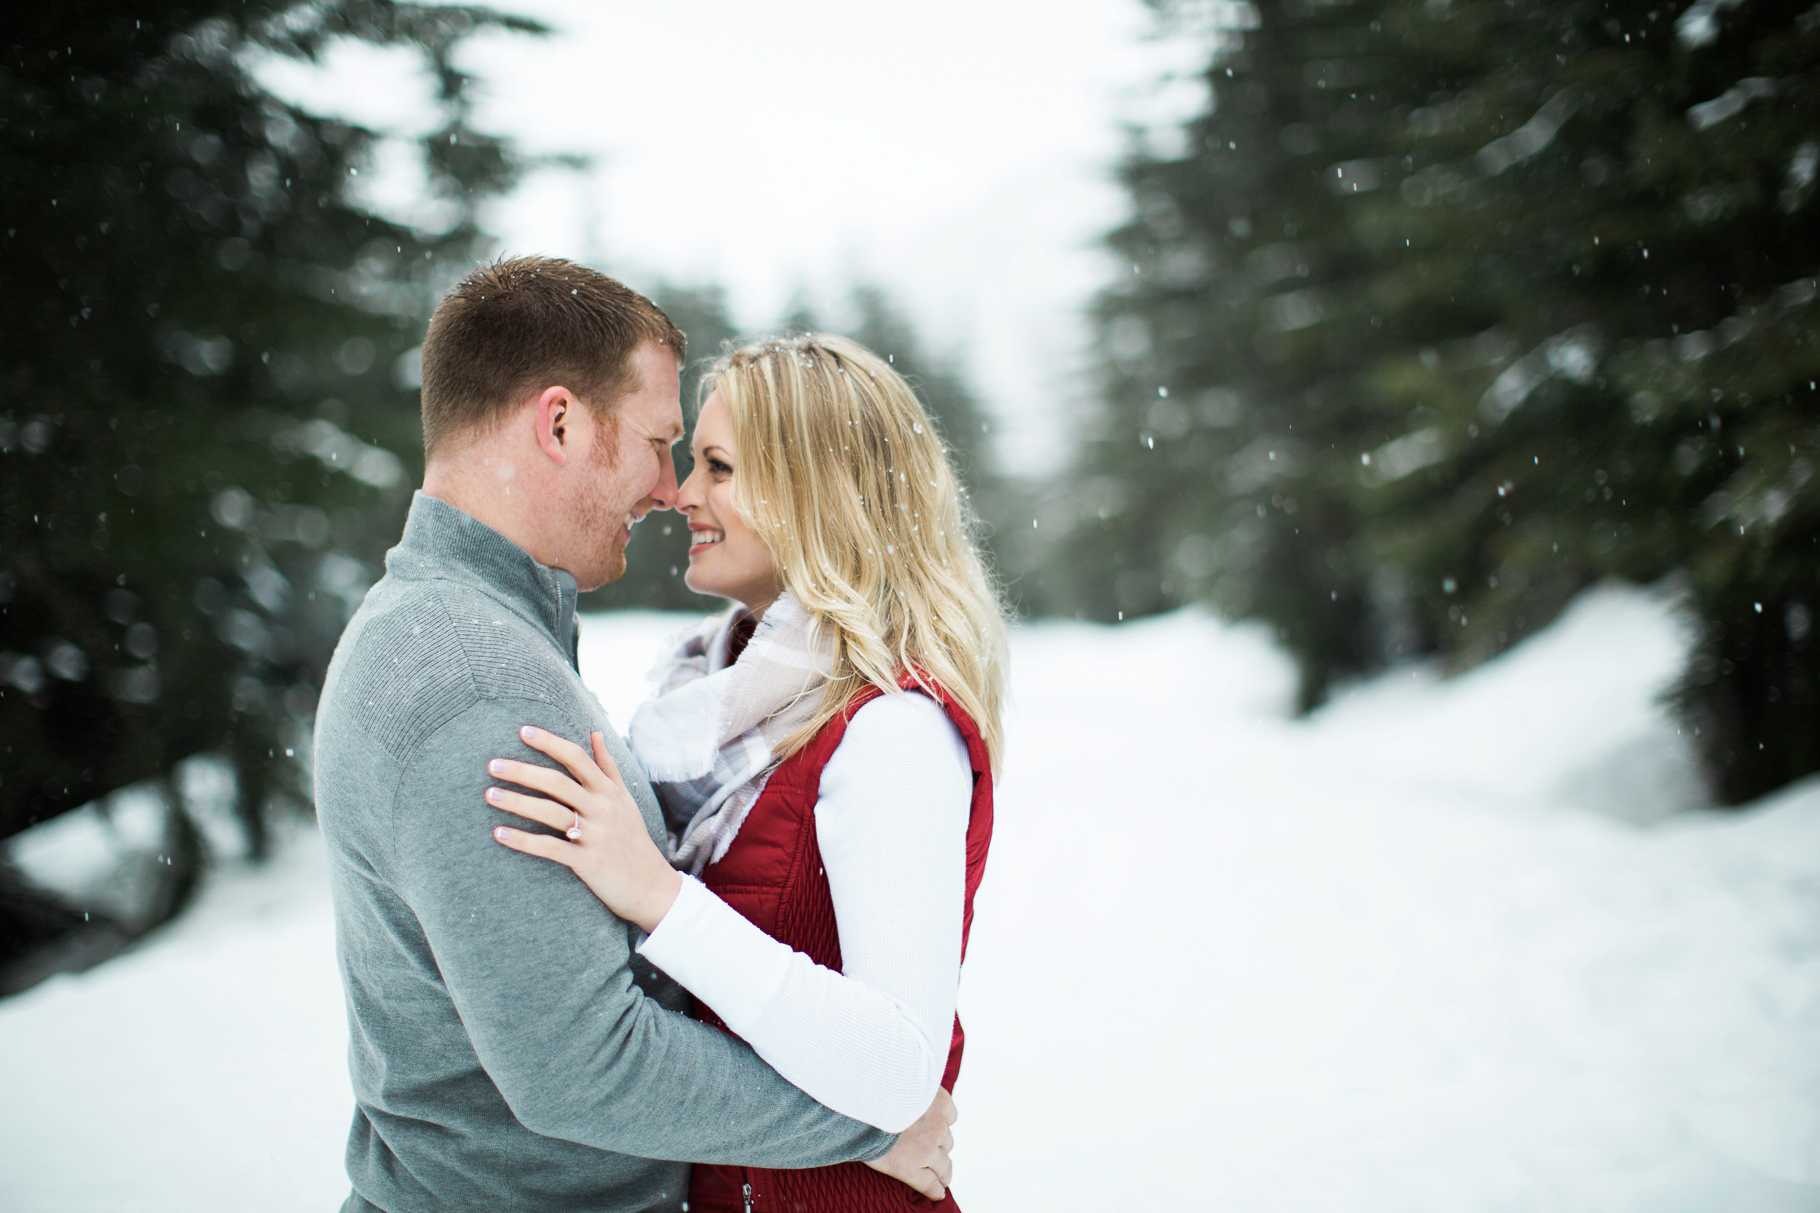 2-Snoqualmie-Pass-Snow-Winter-Adventure-Gold-Creek-Pond-Engagement-Elopement-Photography-Seattle-Wedding-Photographer